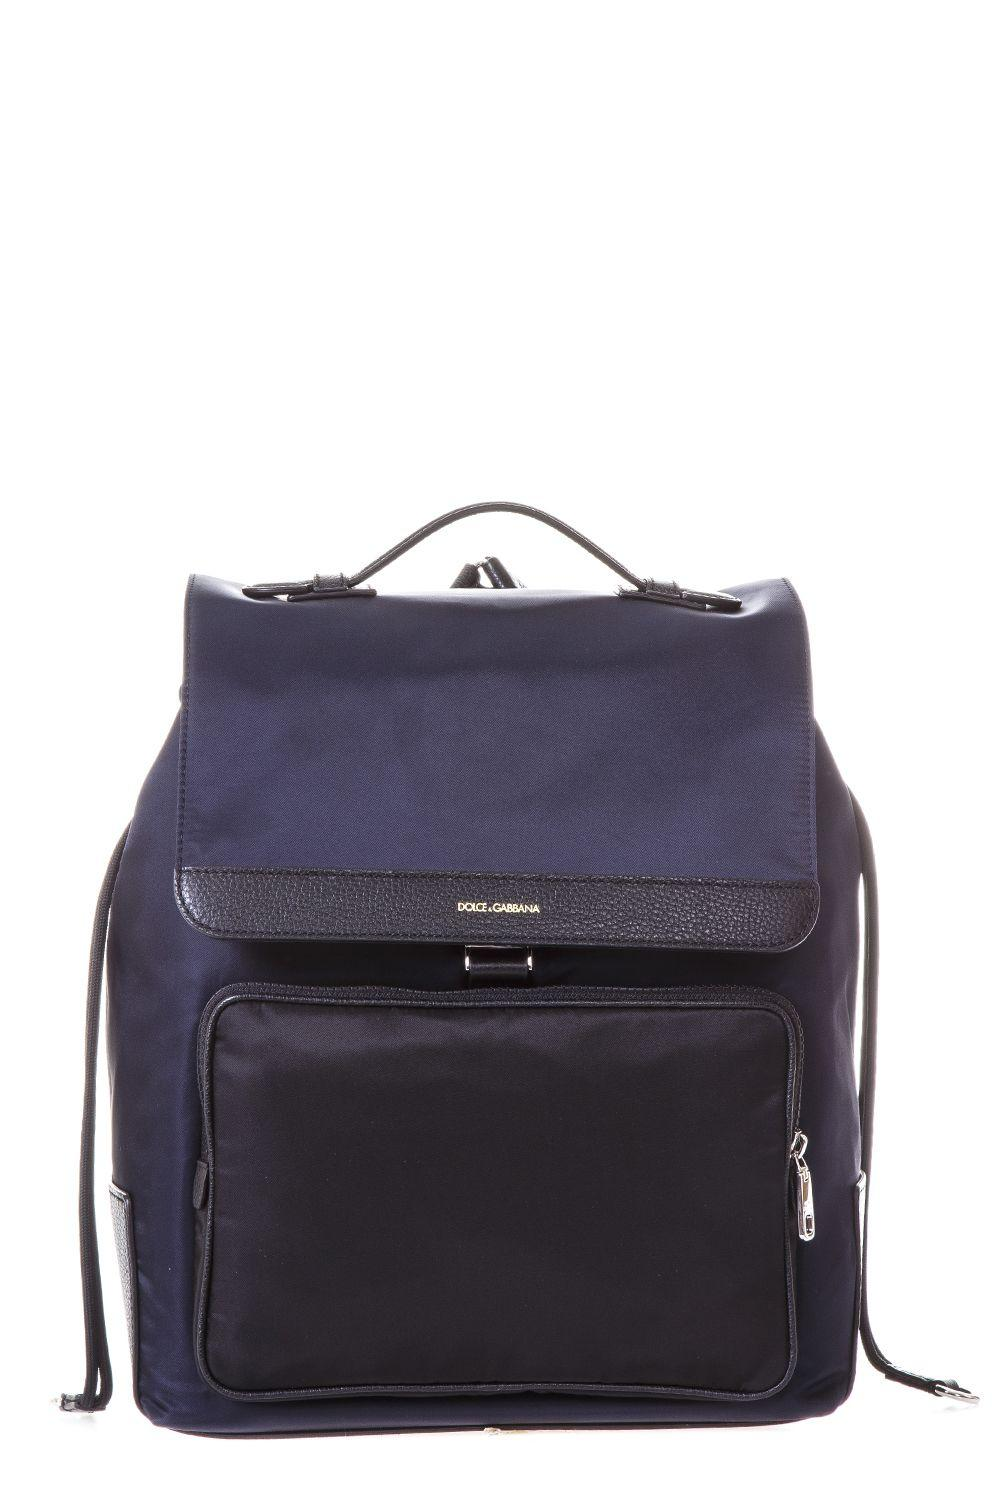 Dolce & Gabbana Squared Nylon Backpack In Blue-Black